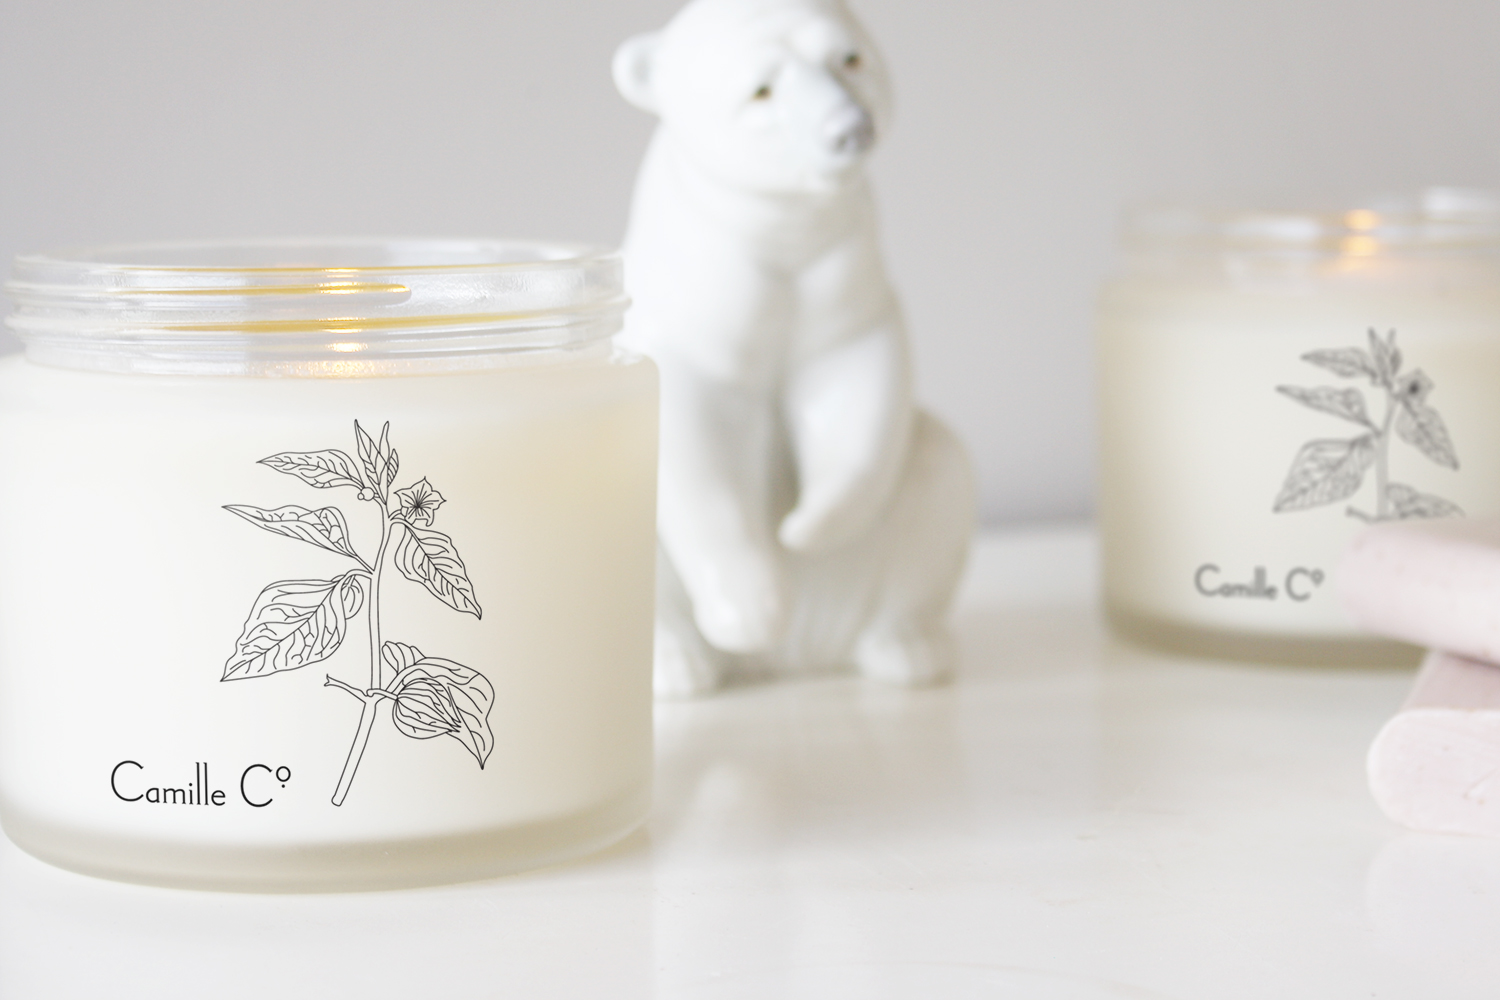 Cape Gooseberry & Musk Camille Co. Candle Packaging Design